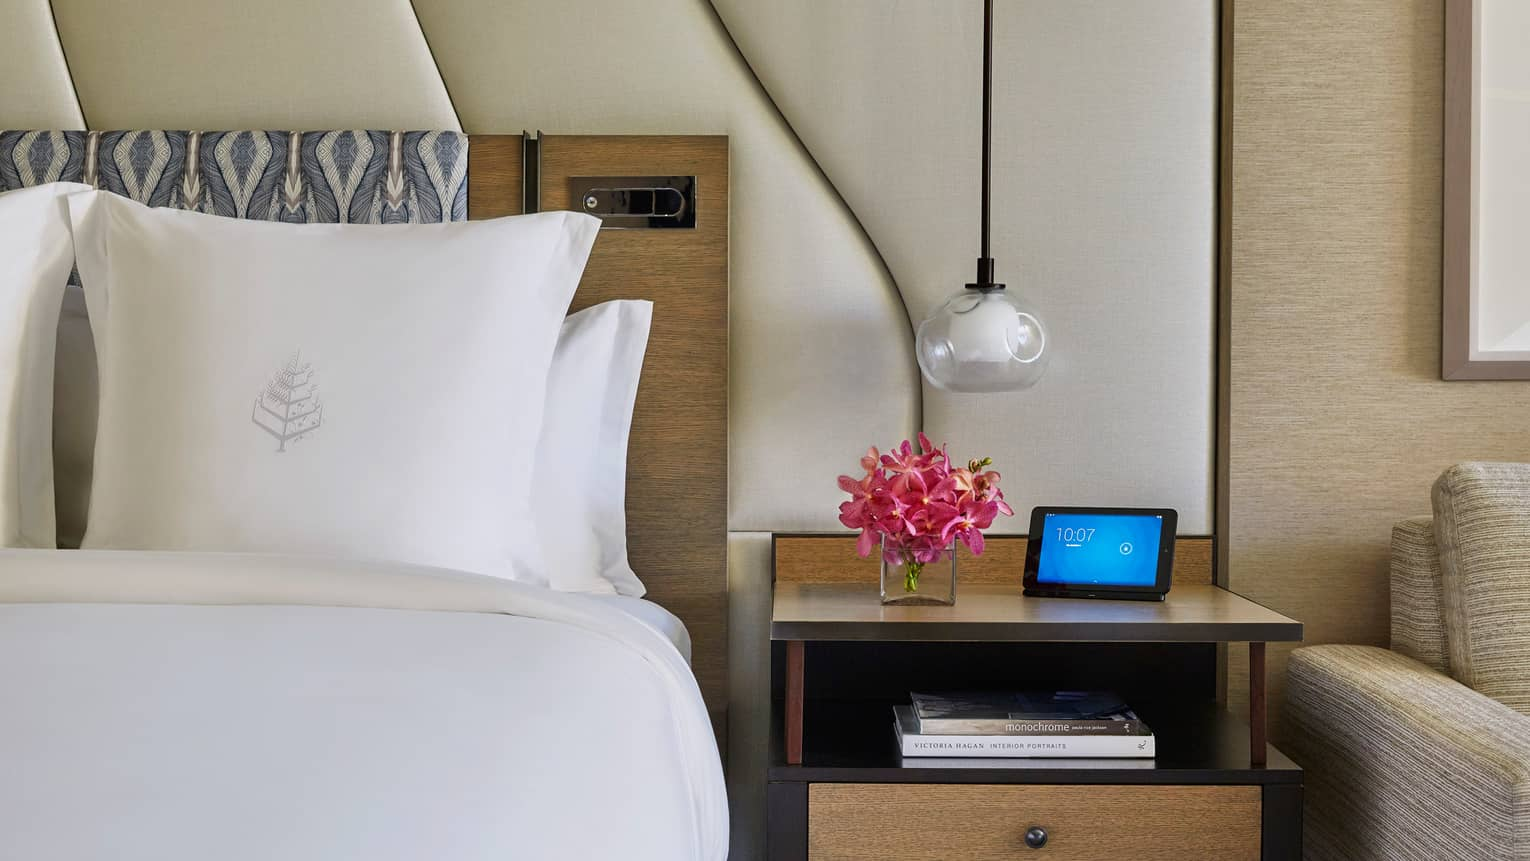 Hotel room with white bed, Four Seasons logo on pillow, large white padded headboard, flowers and ipad on nightstand